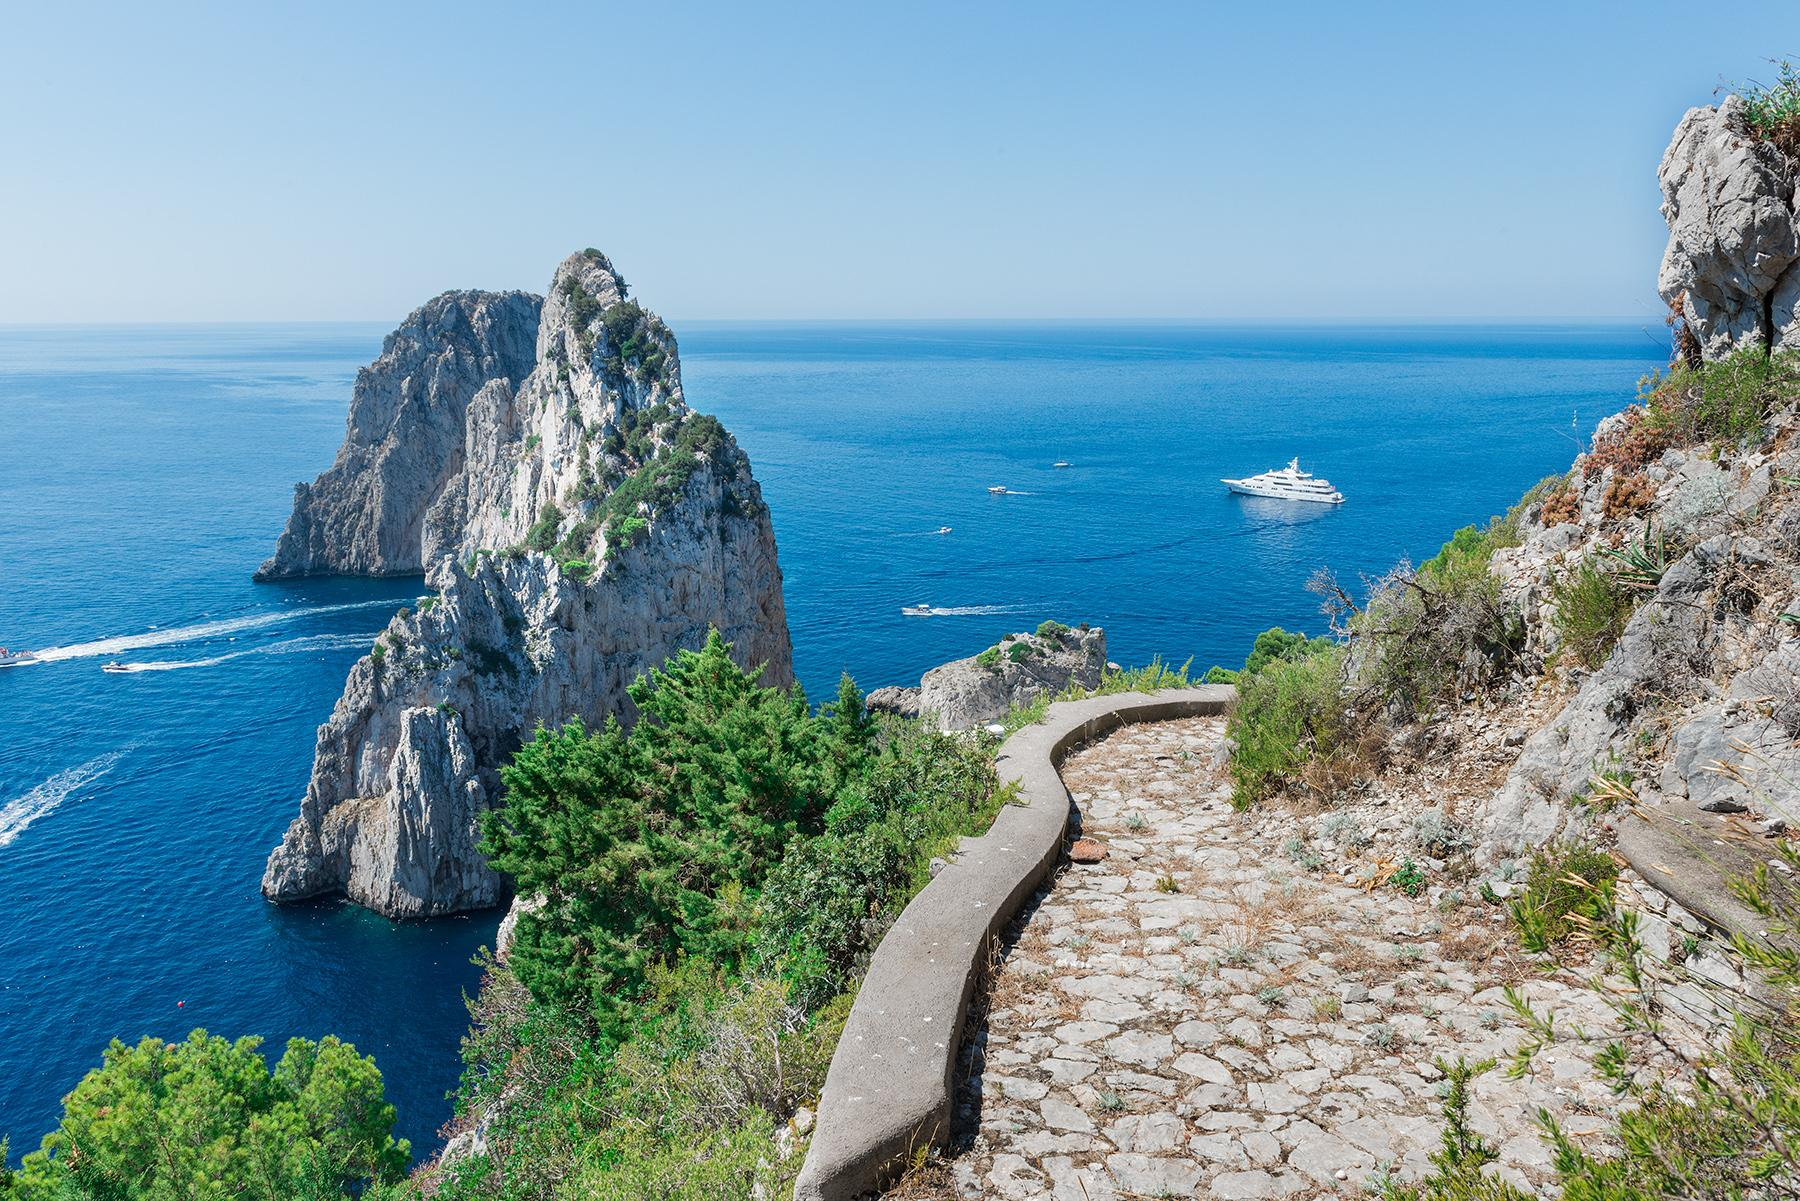 Remarkable villa with a breathtaking panorama on the Faraglioni rocks - 30